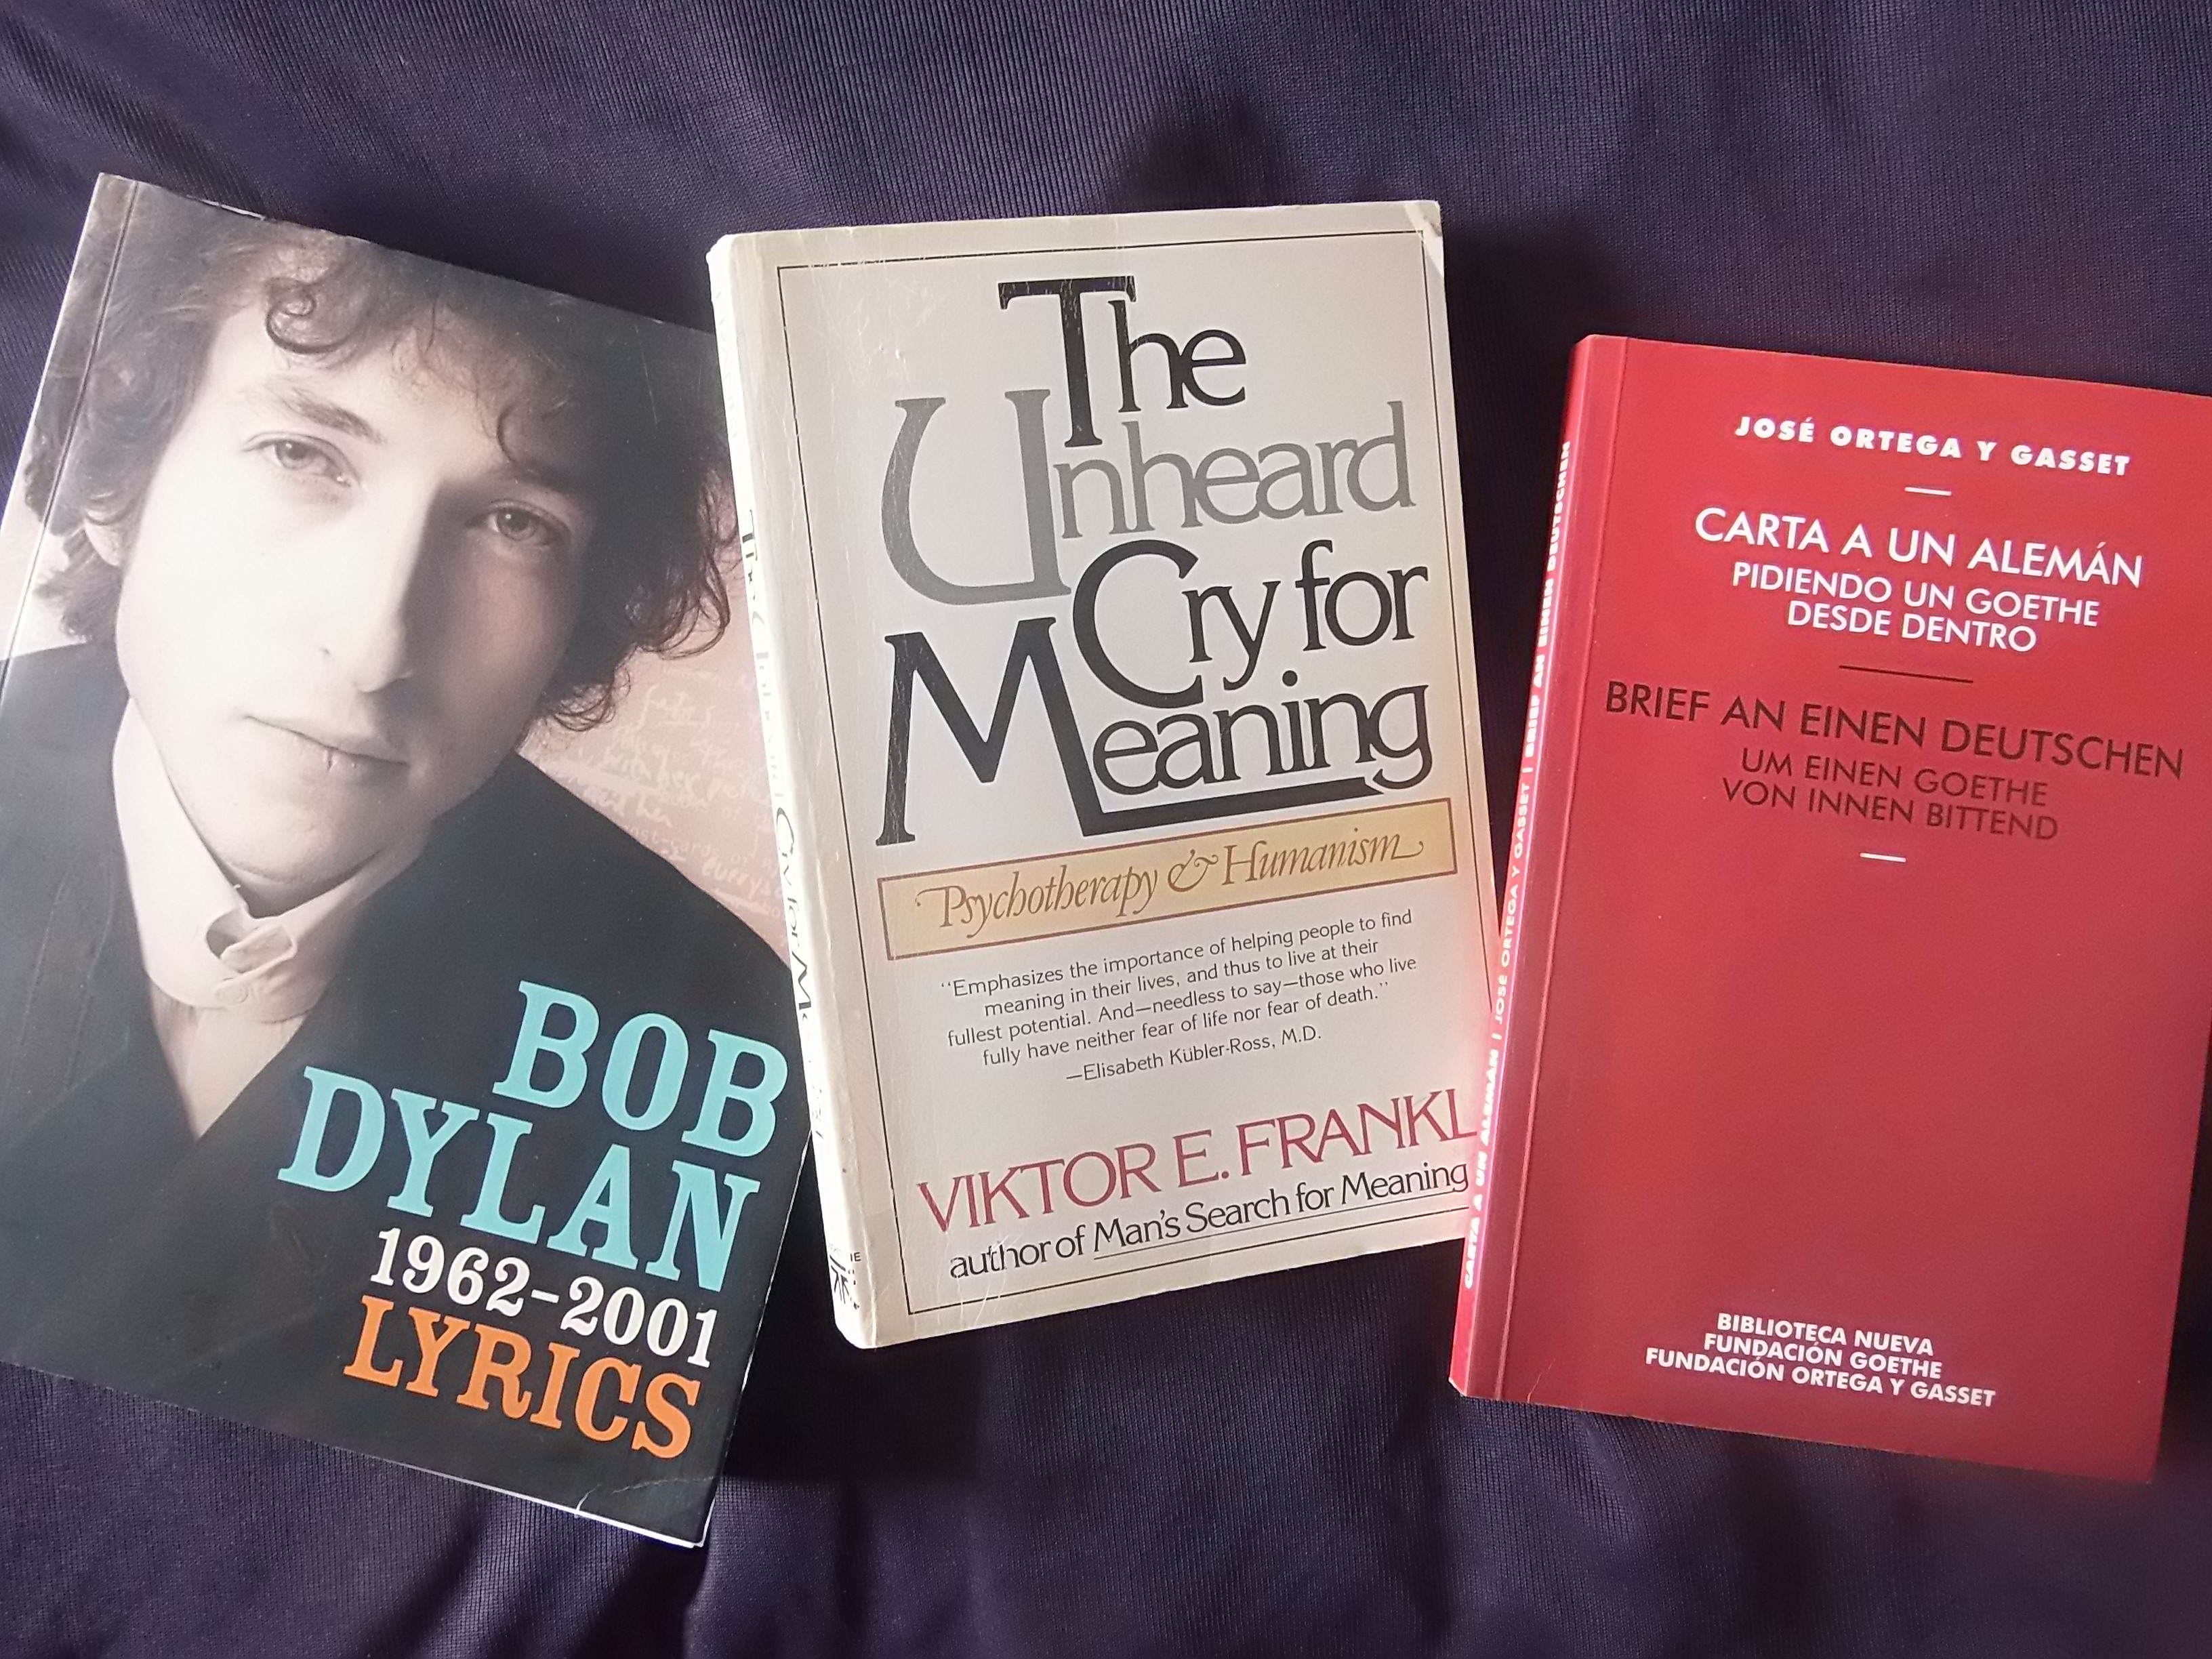 Quotes by Bob Dylan, Viktor Frankl & Ortega | Humano, creativamente humano